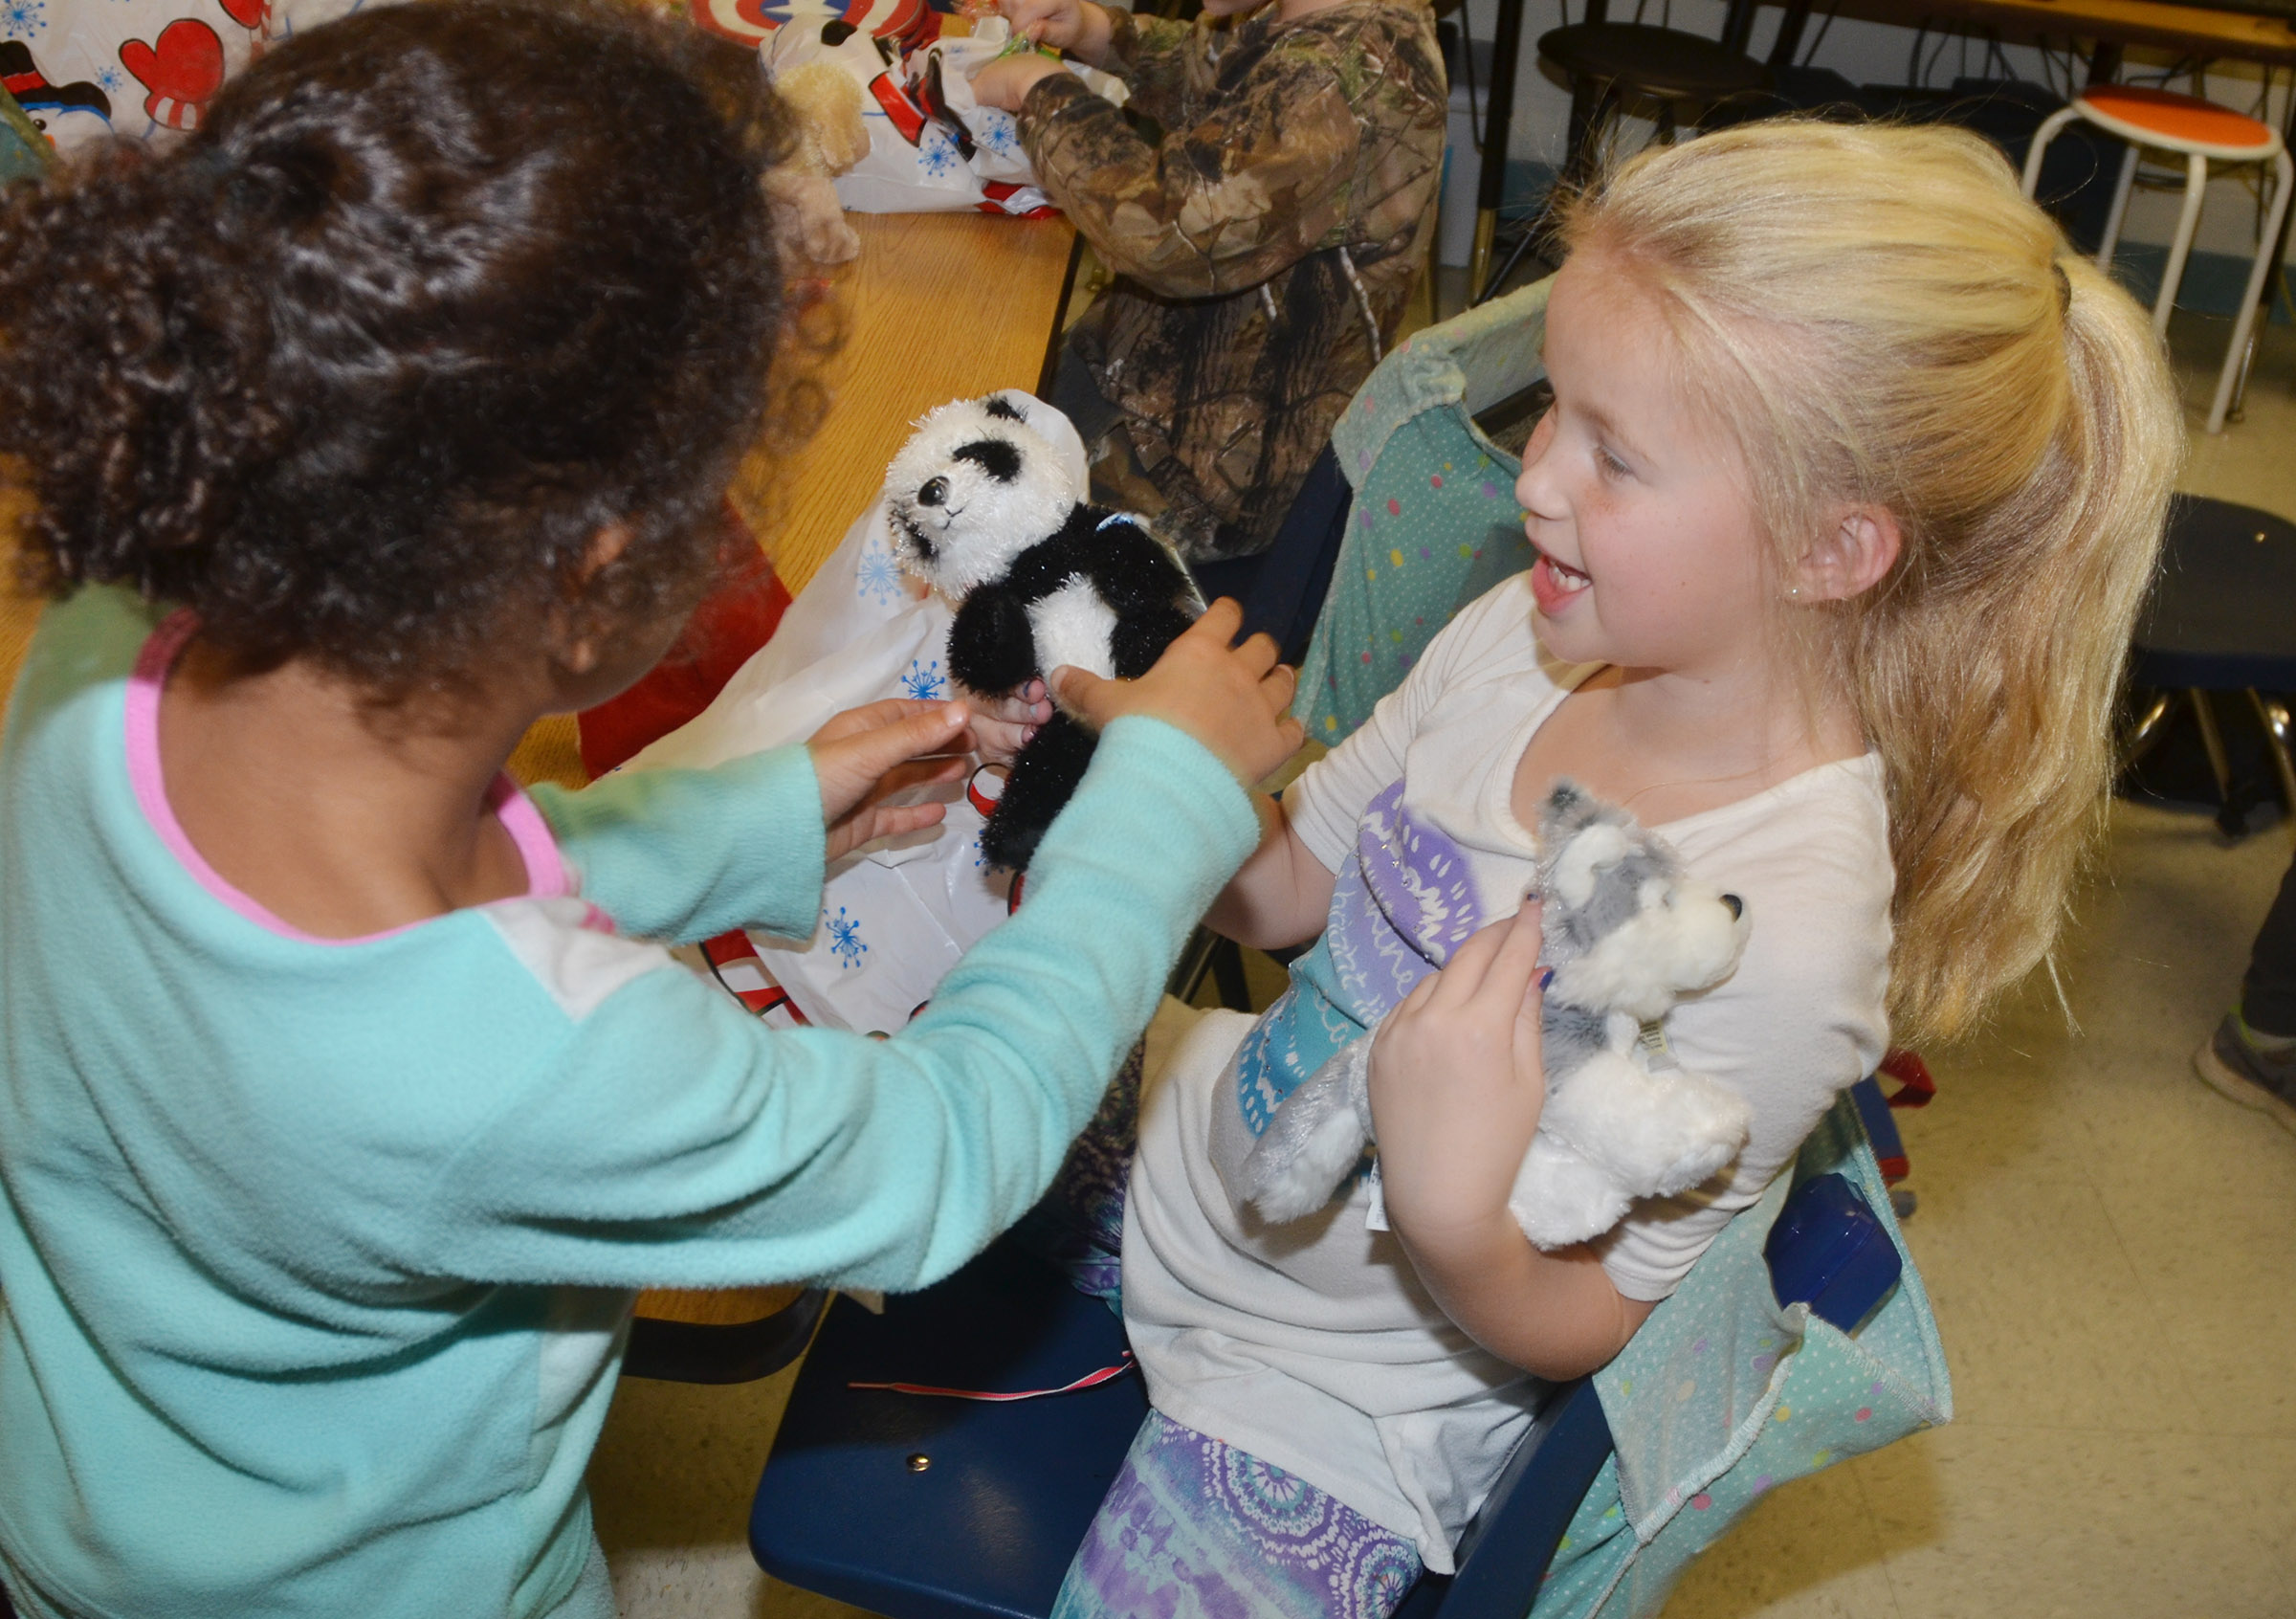 CES first-graders Kylei Thompson, at left, and Lillie Judd show each other the stuffed animals they received from teacher Amanda Barnett.